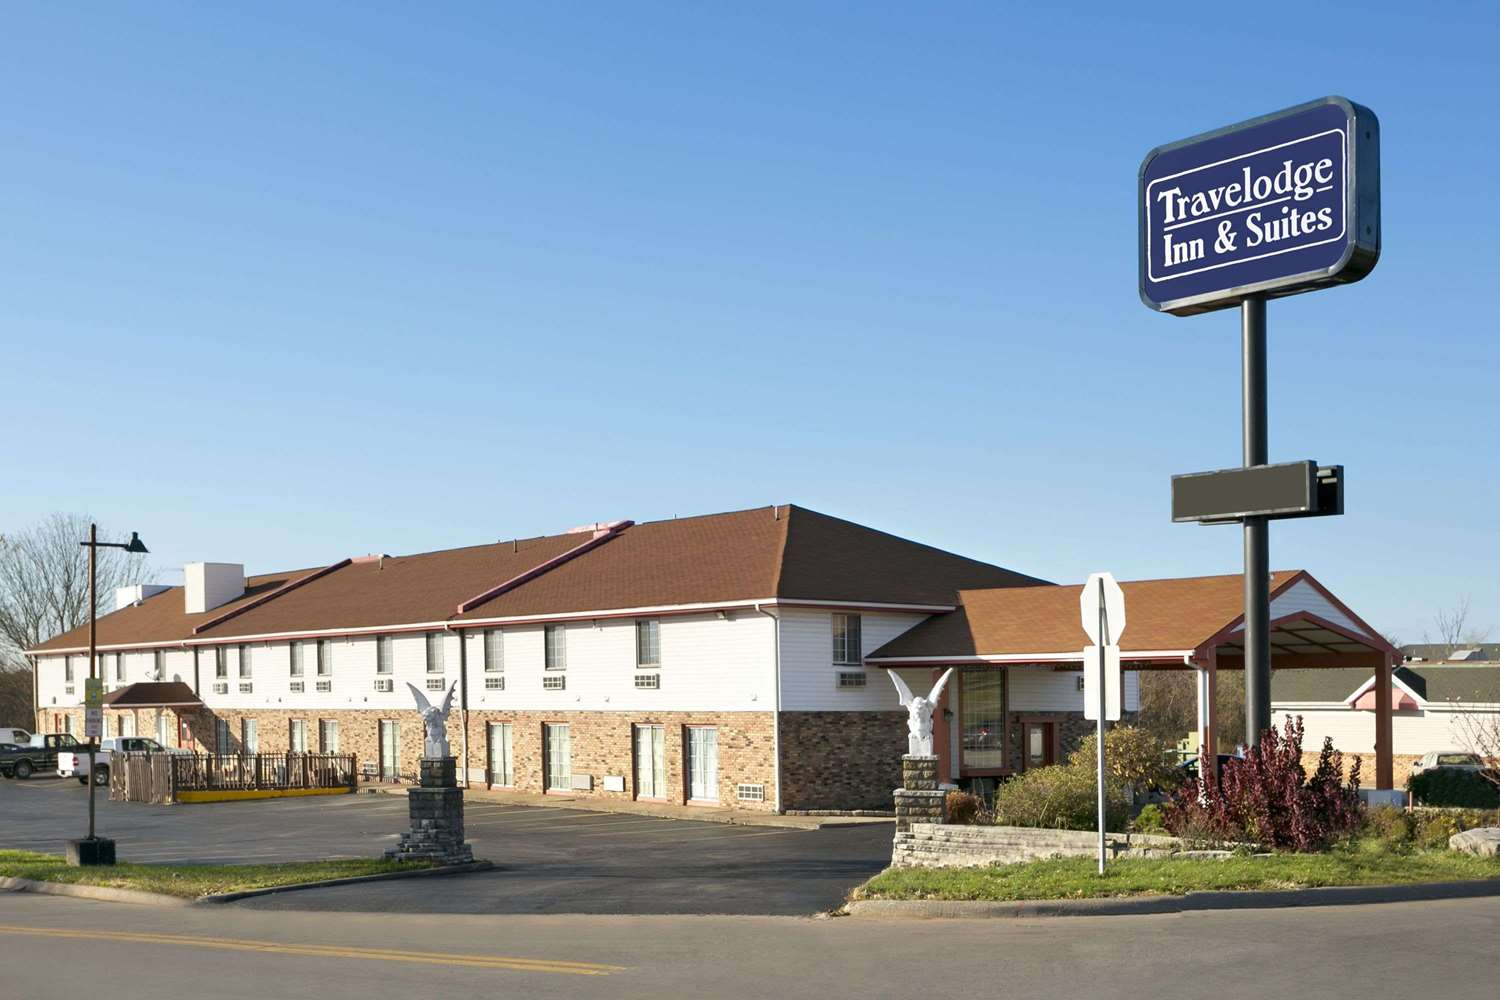 Exterior view - Travelodge Inn & Suites Muscatine